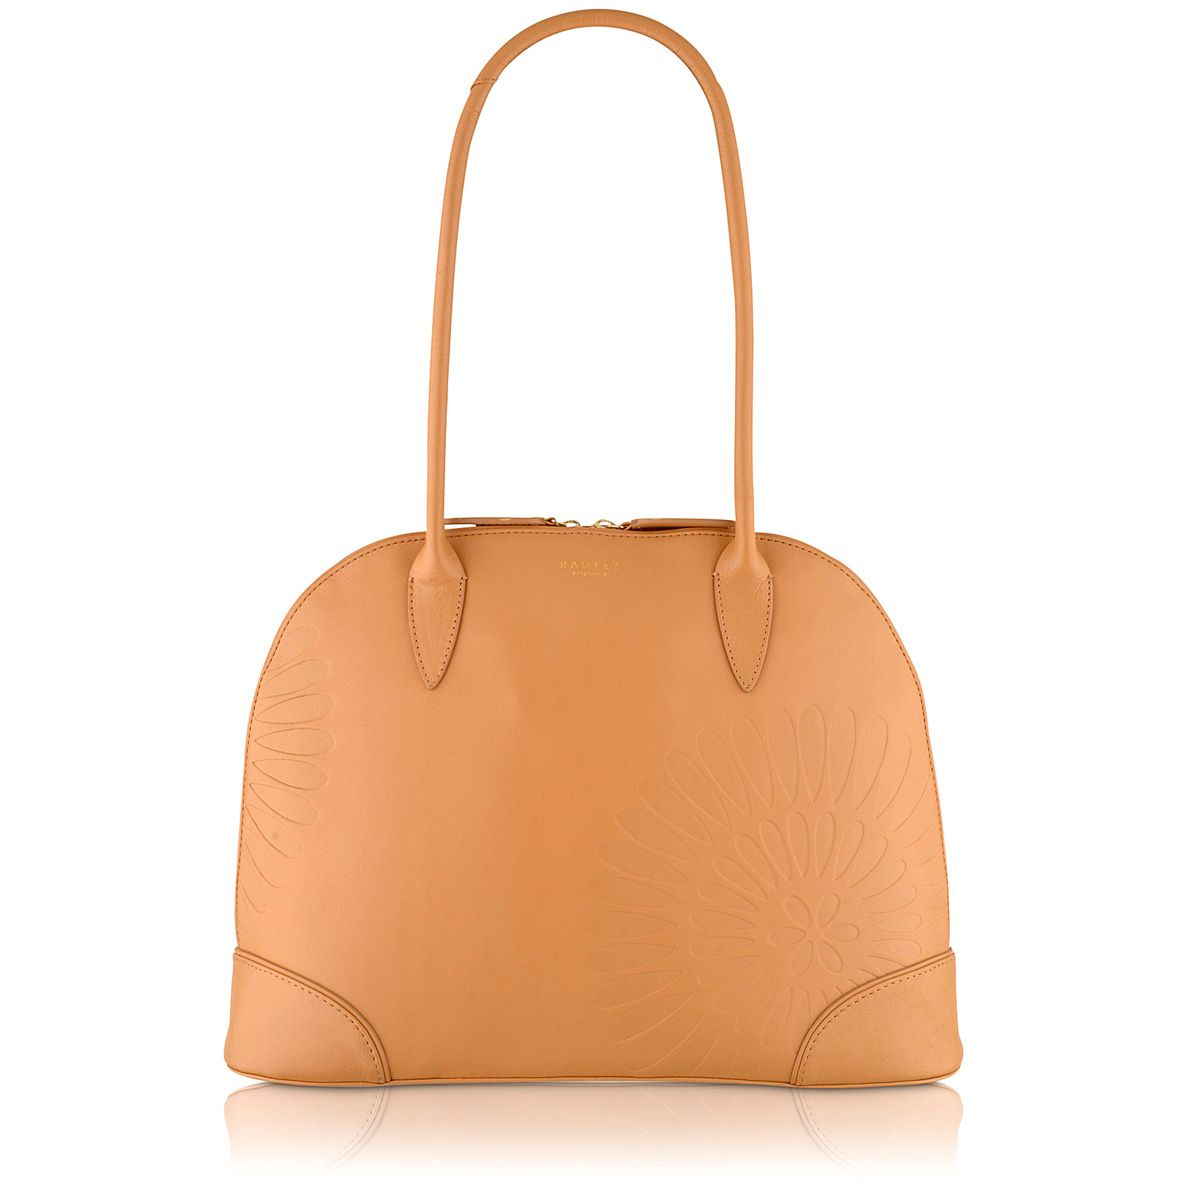 Finch tan medium shoulder bag